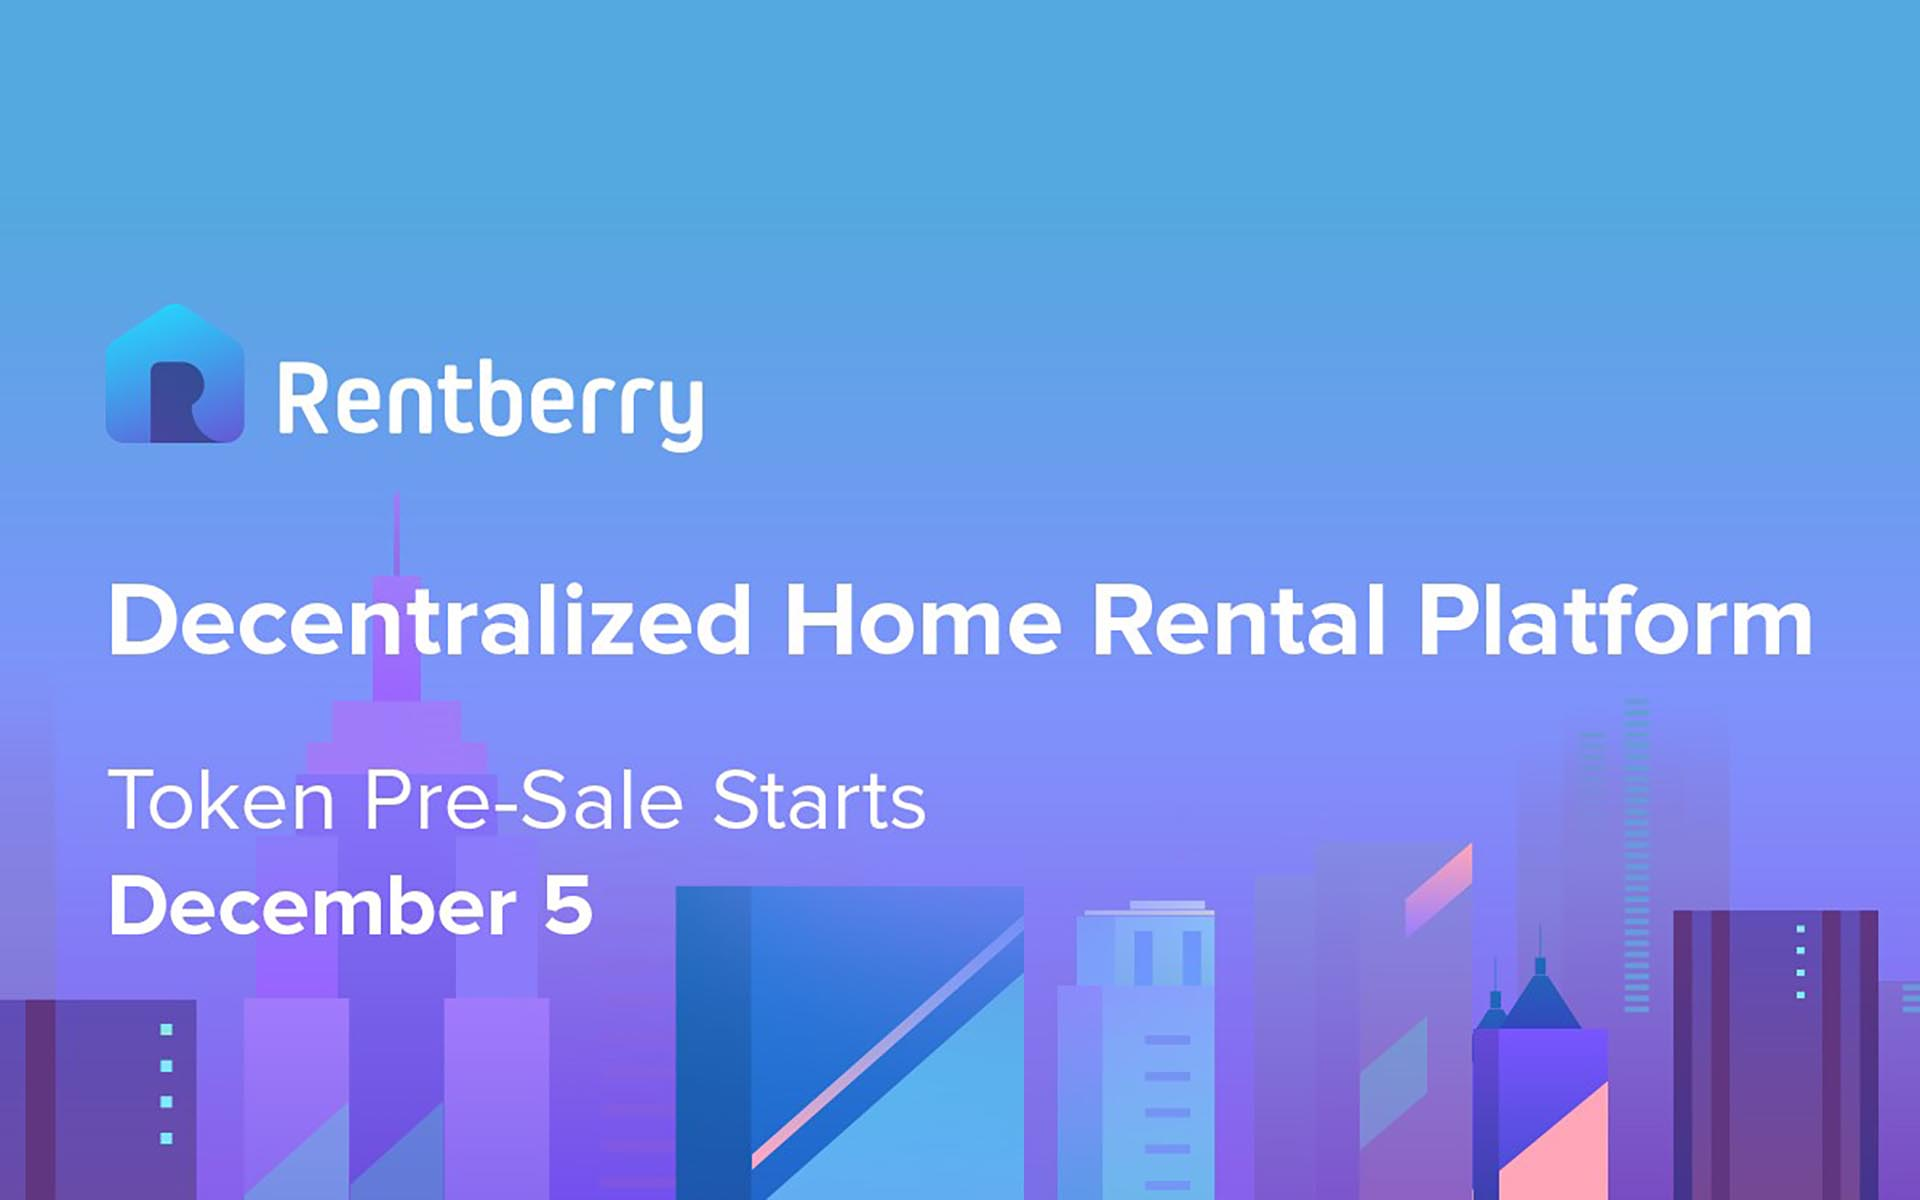 Rentberry - the Long-Awaited Innovation in the Long-Term Home Rental Industry